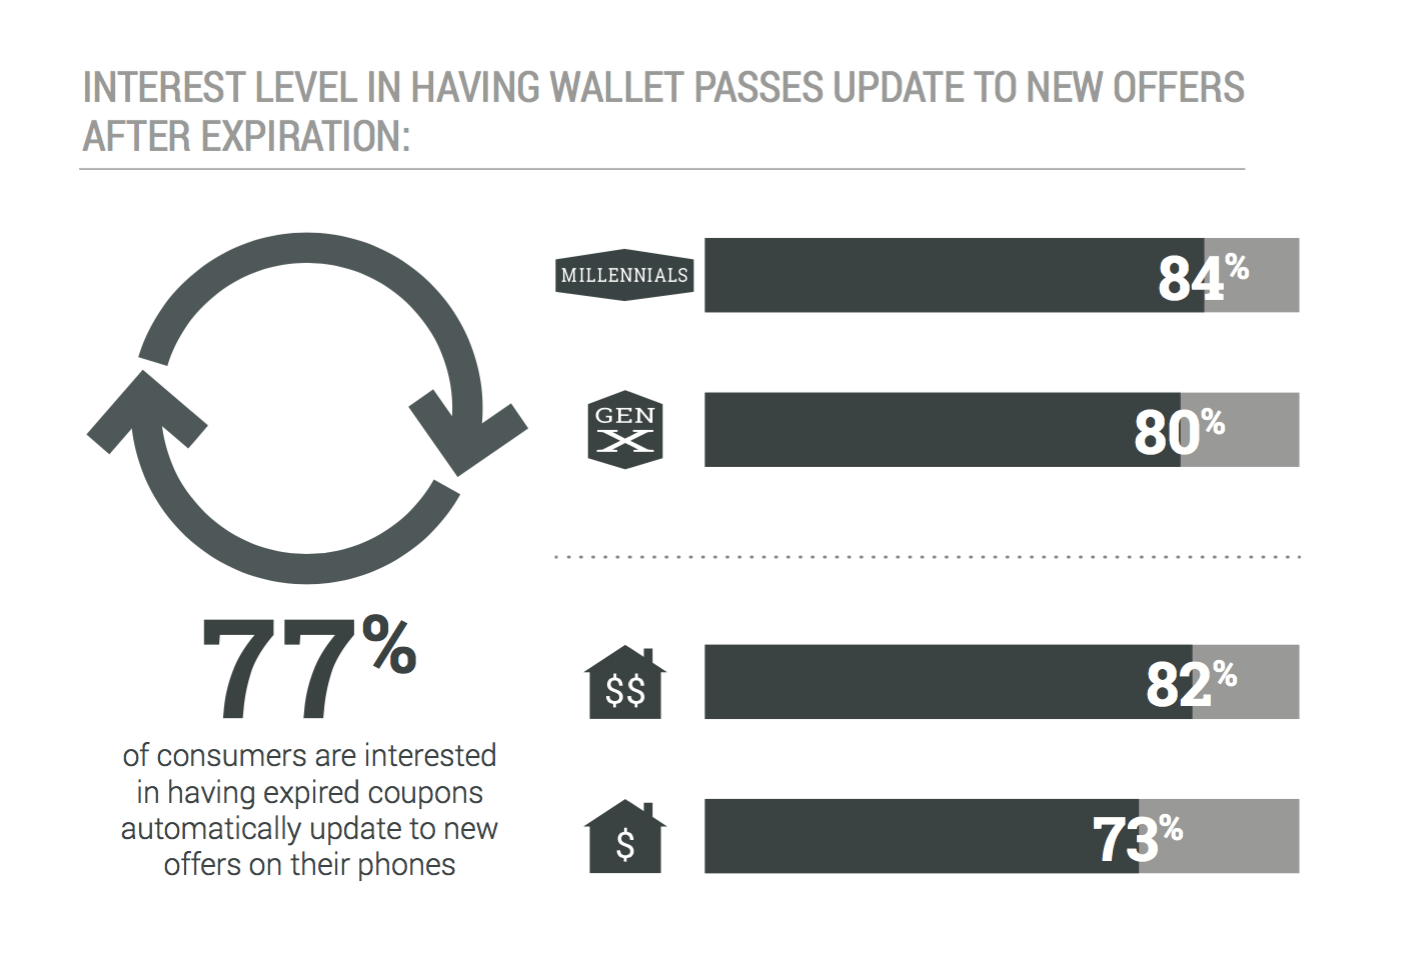 interest-level-in-having-mobile-wallet-passes-update-to-new-offers-after-expiration-state-of-mobile-wallet-marketing-report-urban-airship